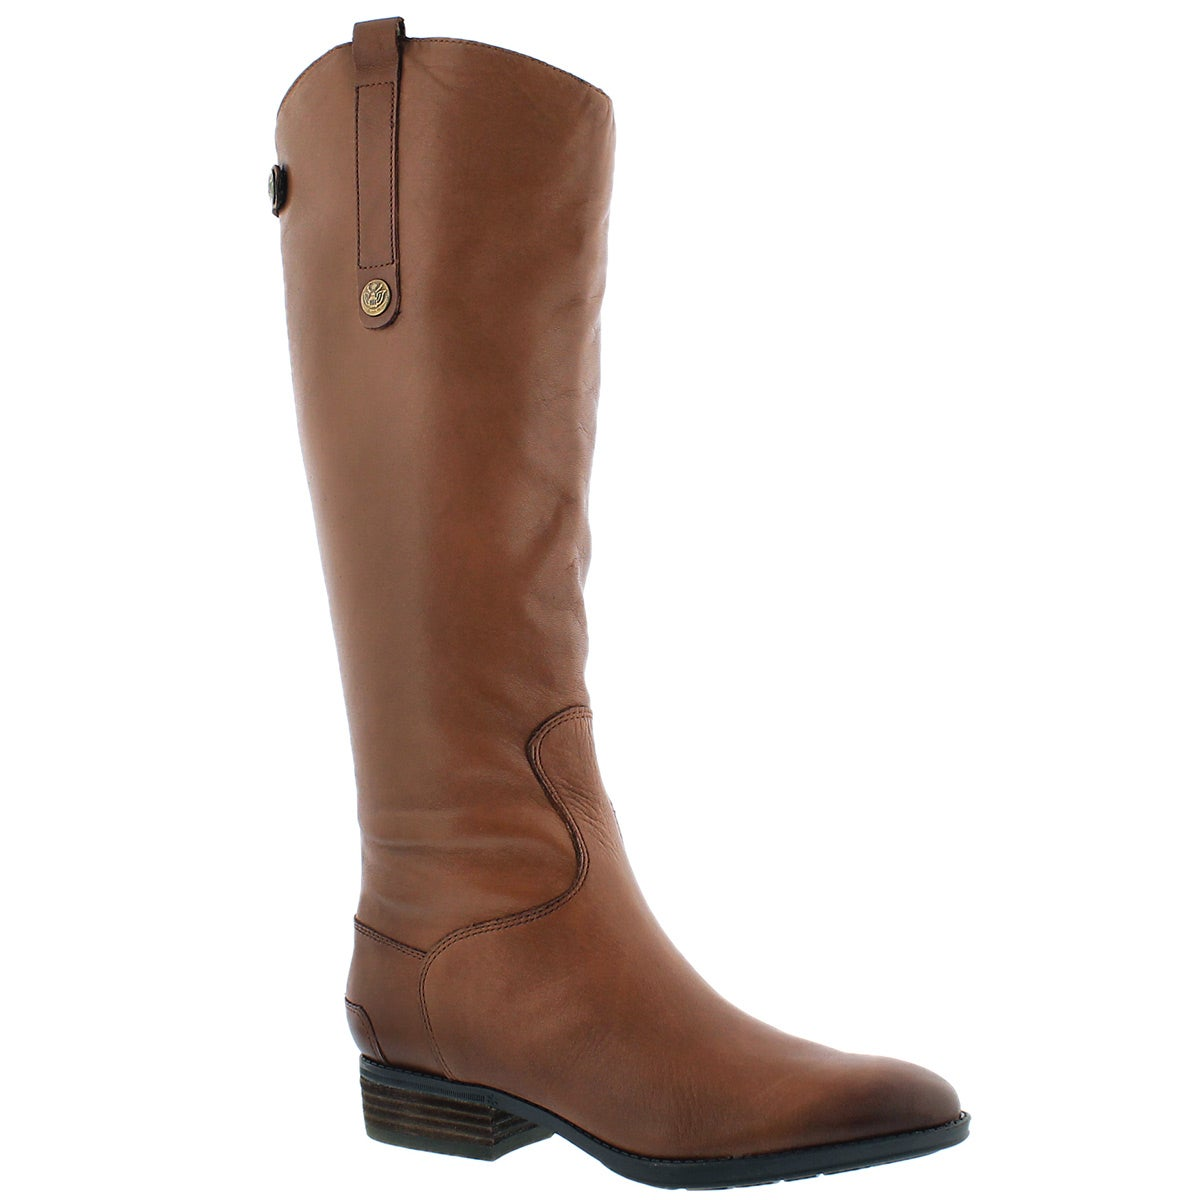 Sam Edelman Women's Penny Tall Riding Boot